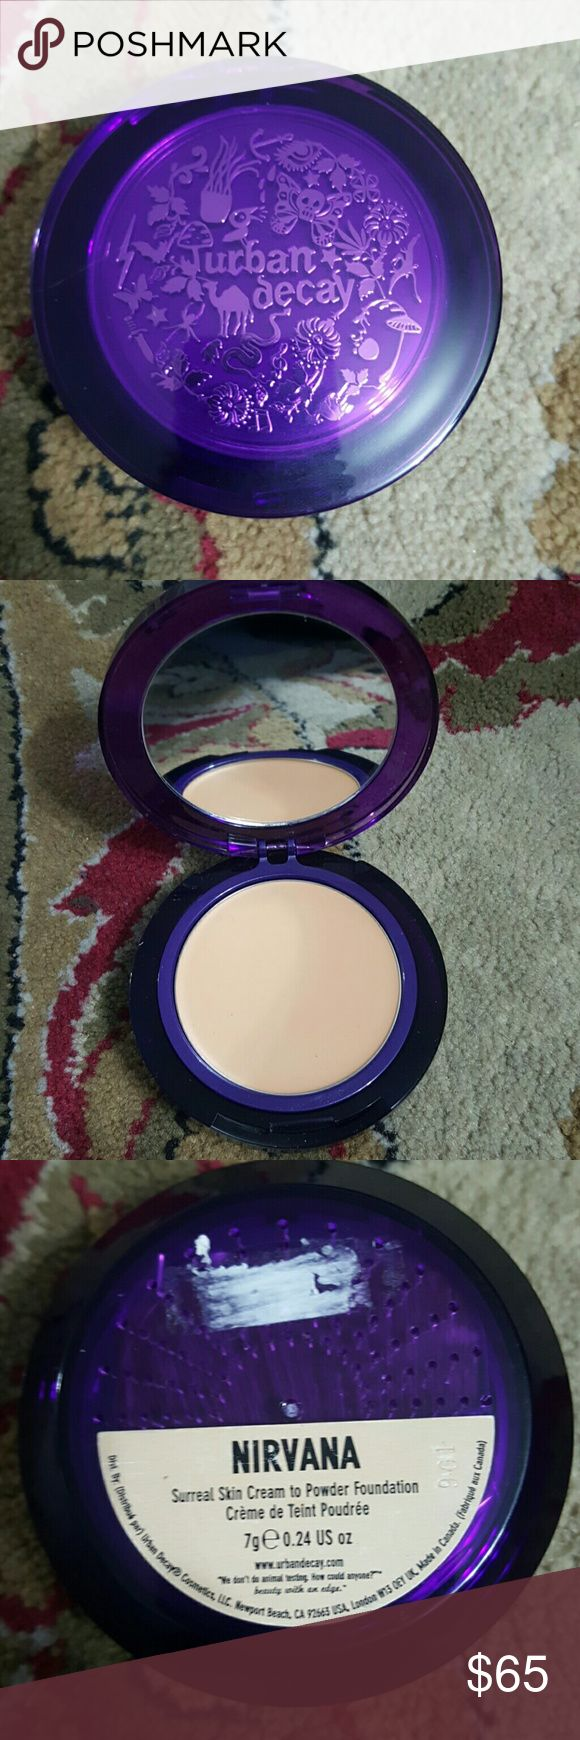 Urban decay Shade: Nirvana   Surreal skin cream to powder foundation Urban Decay Makeup Foundation